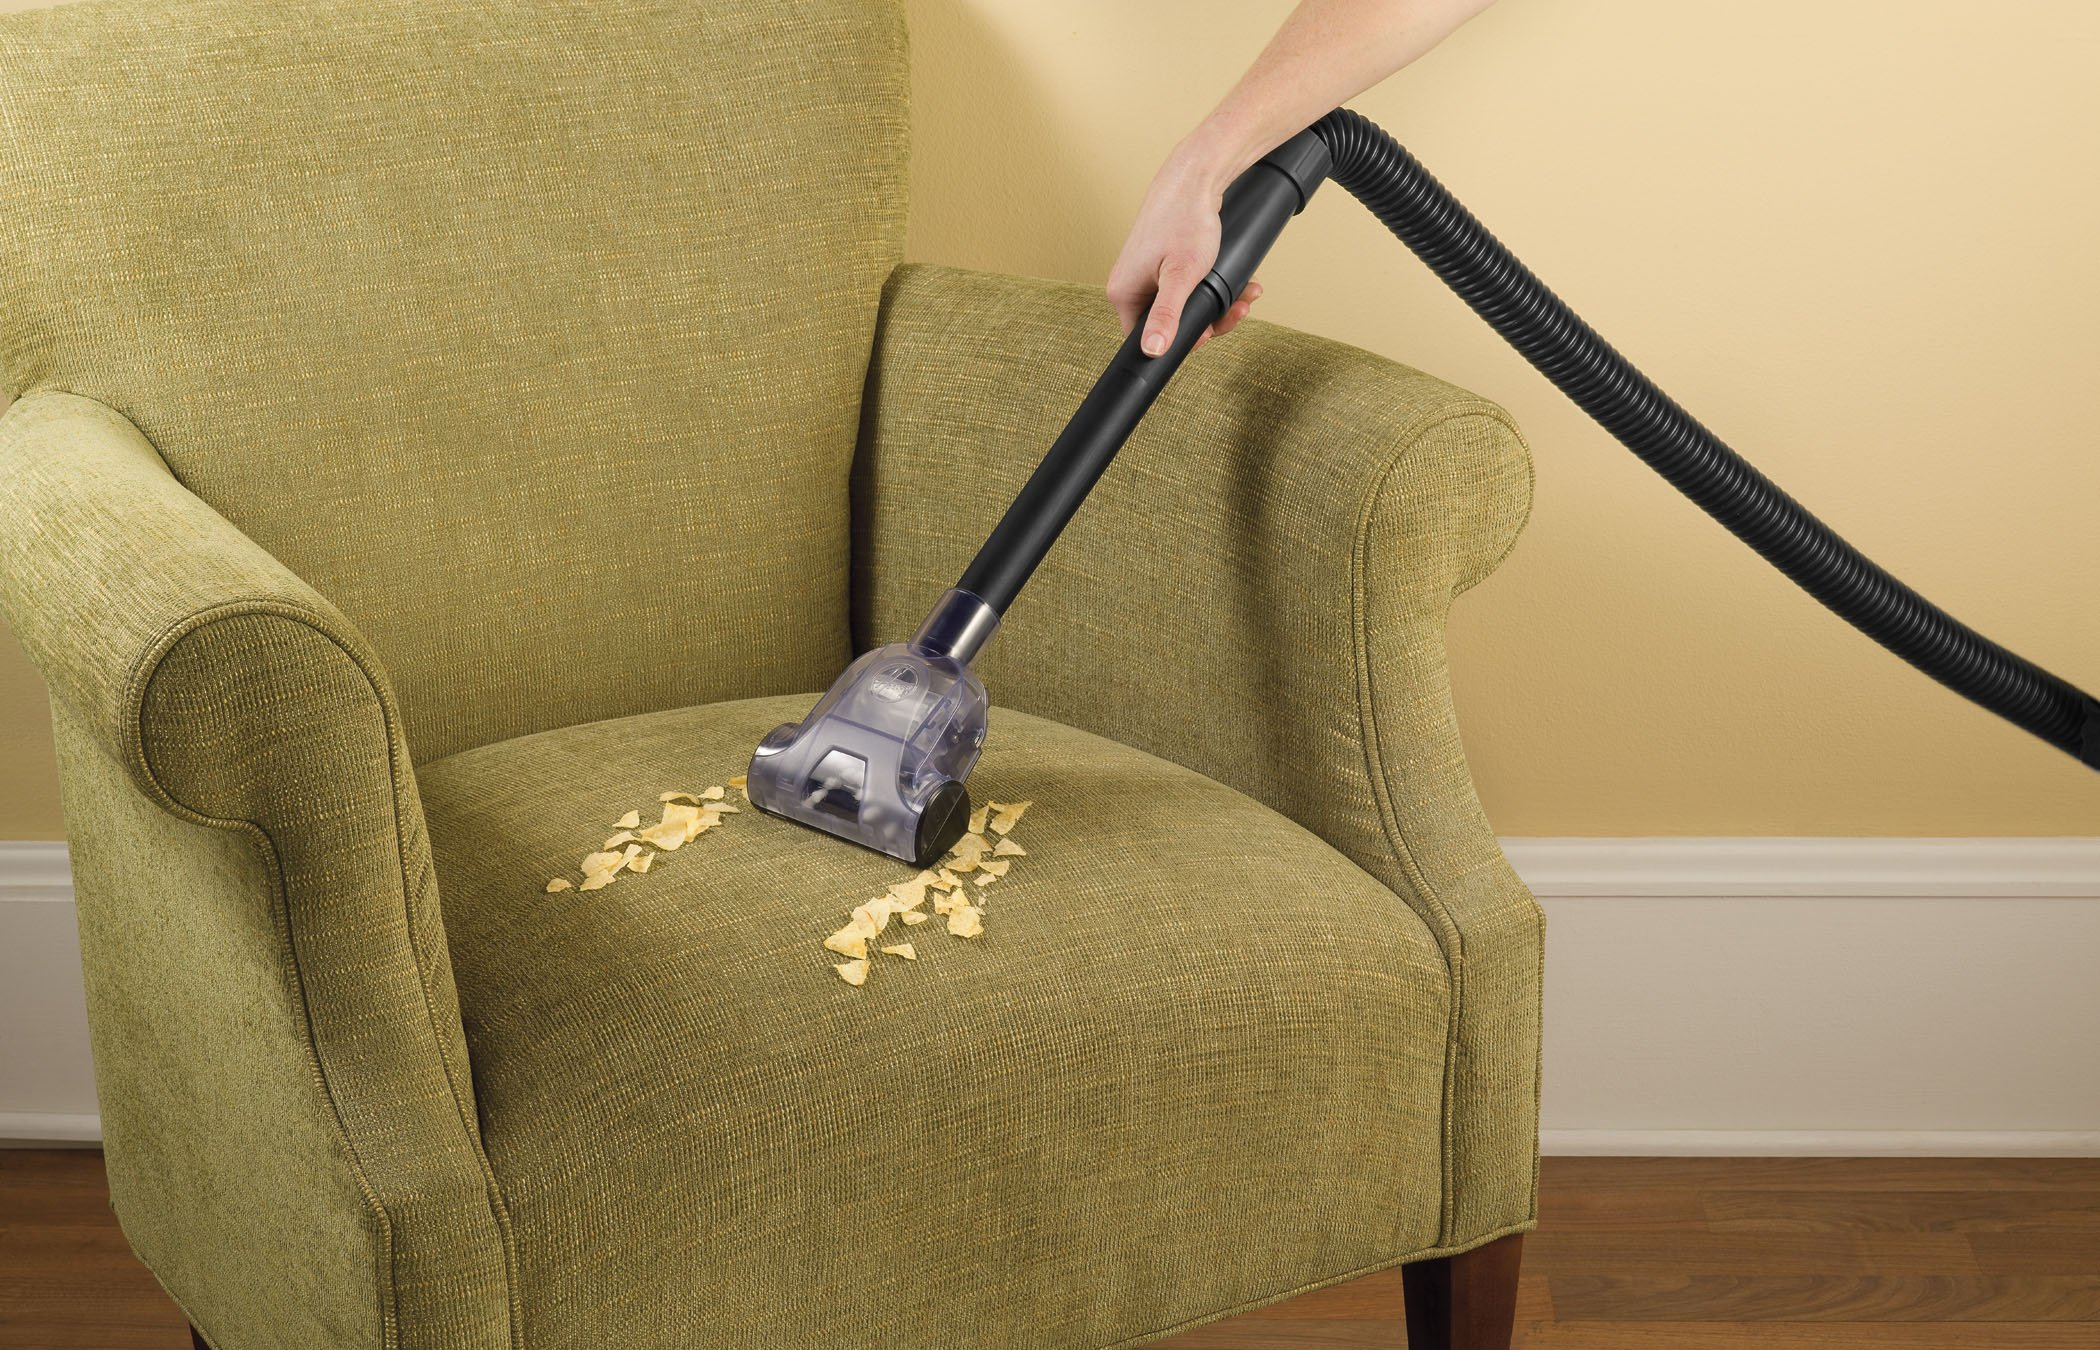 Hoover Vacuum Cleaner T-Series WindTunnel Corded Bagged Upright Vacuum UH30300 by Hoover (Image #7)